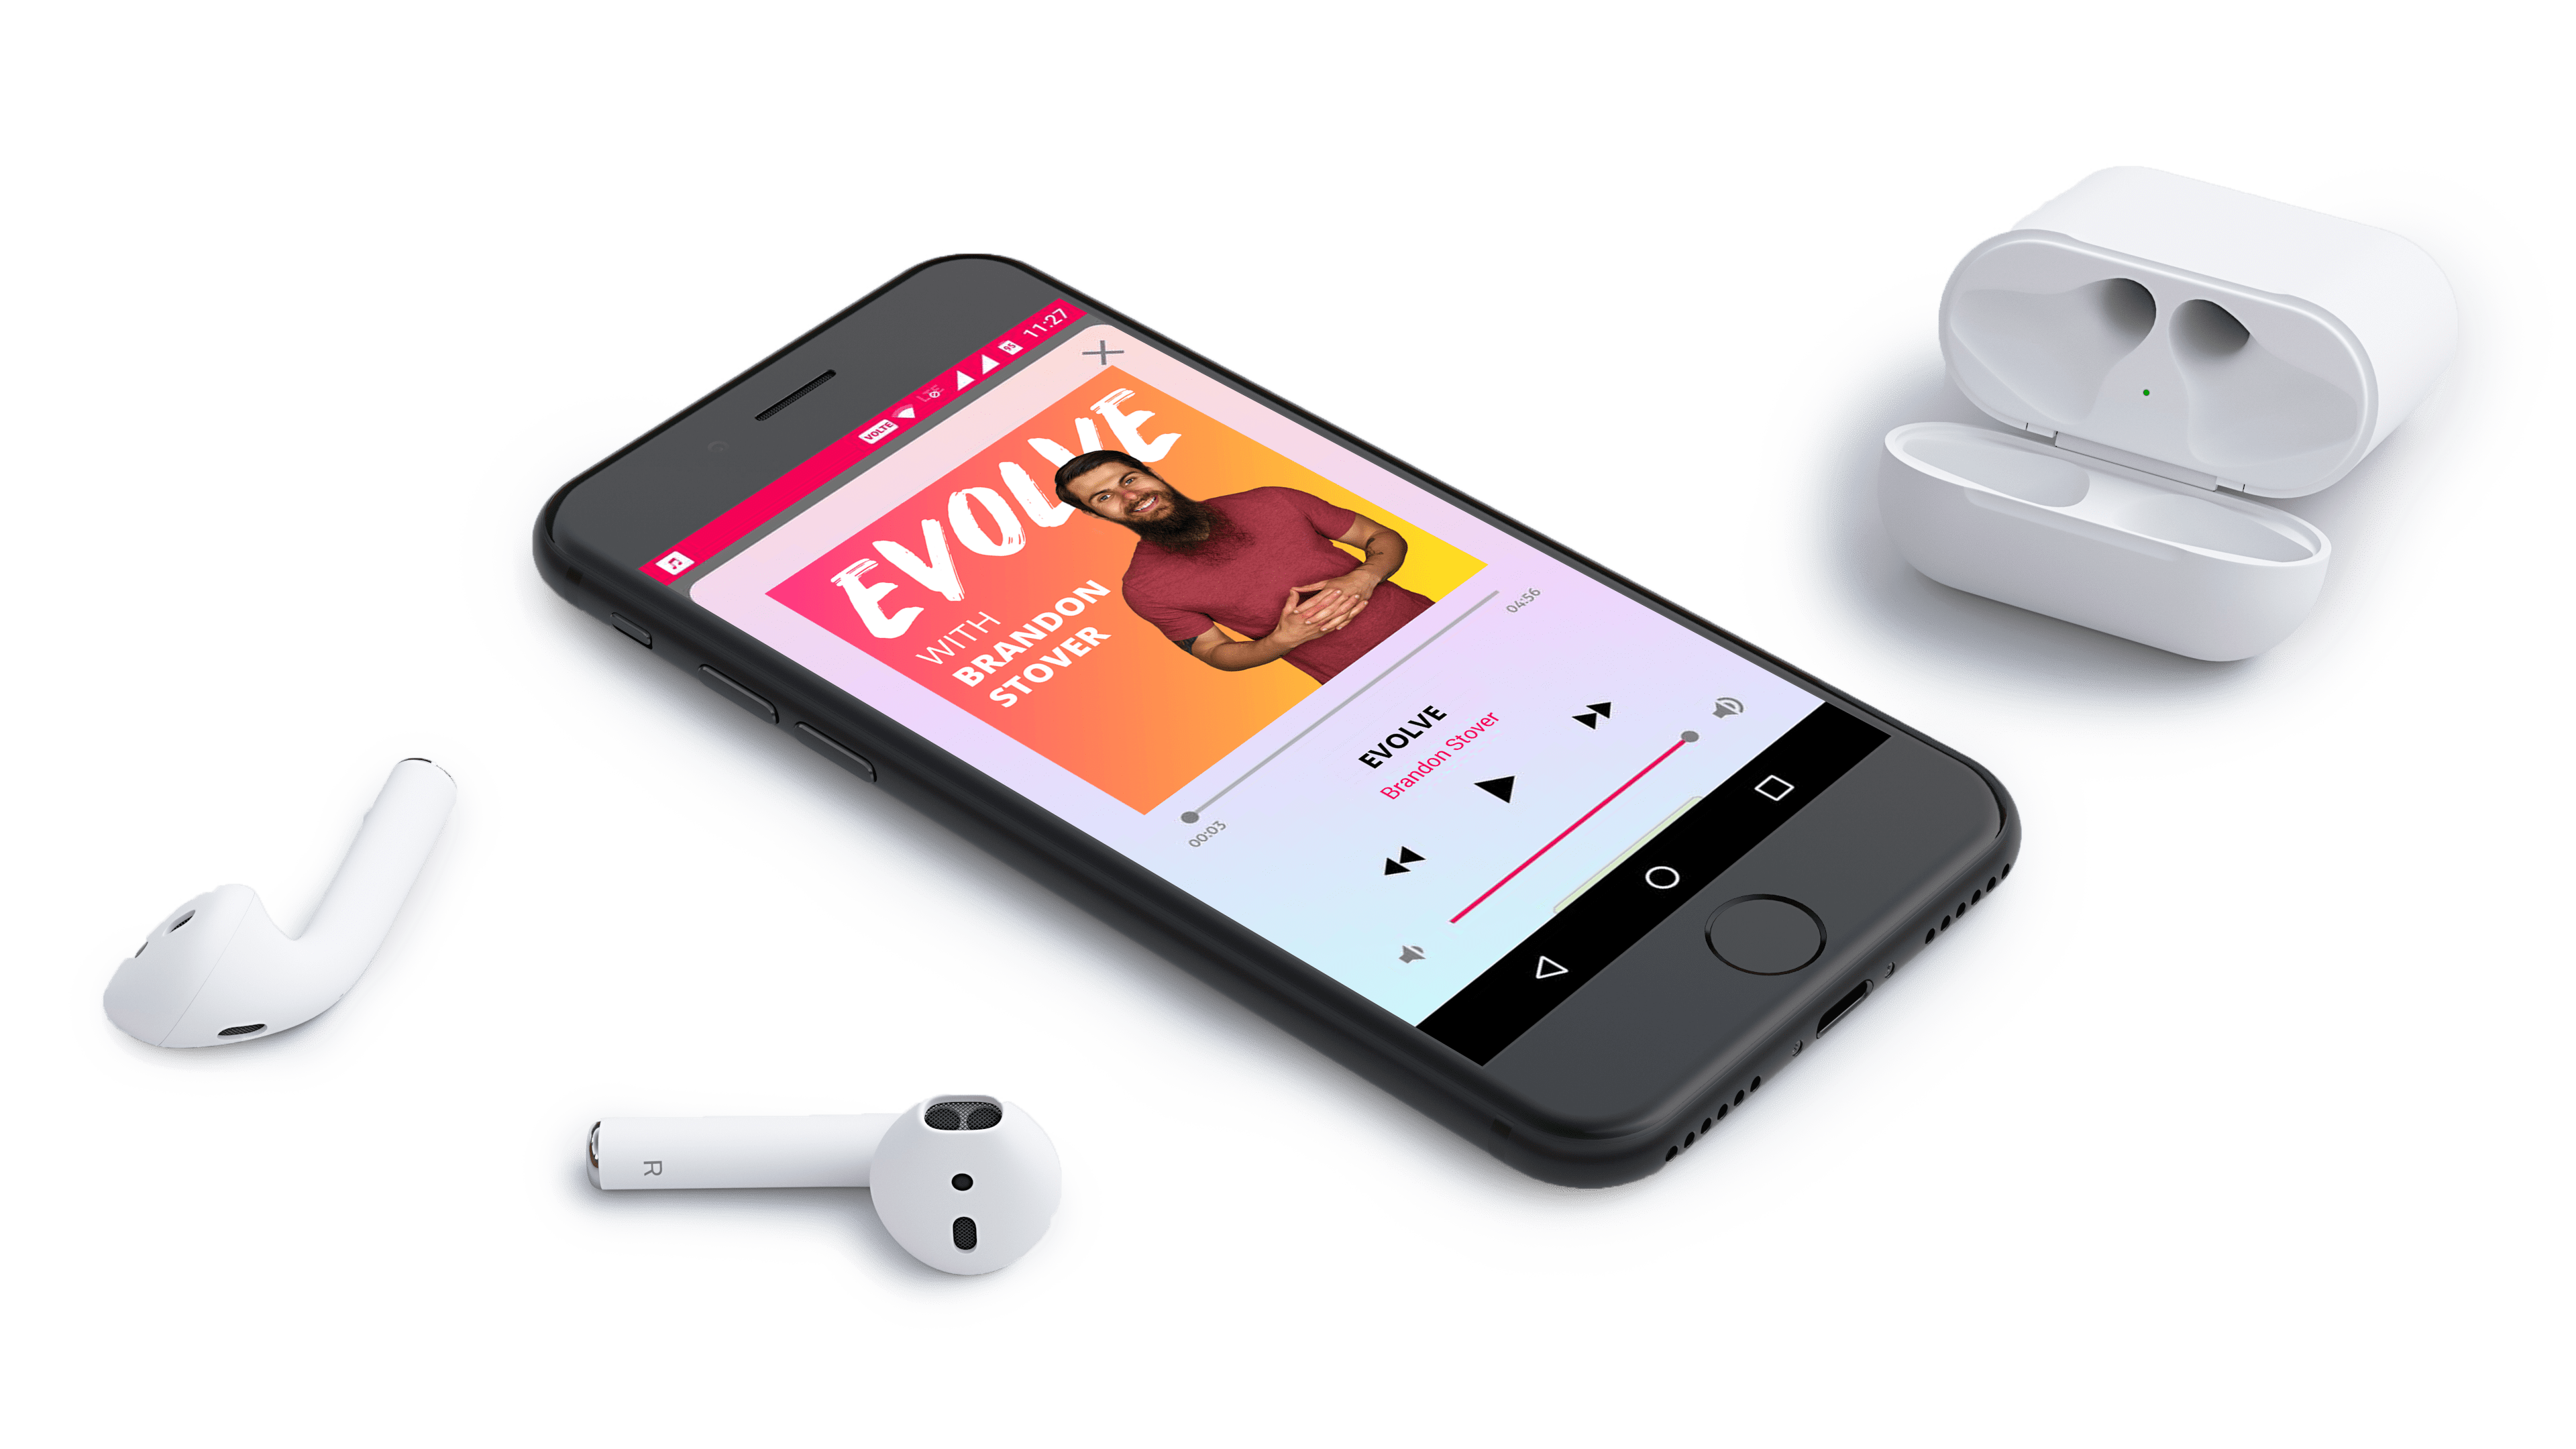 Evolve podcast shown on Apple iPhone with airpods